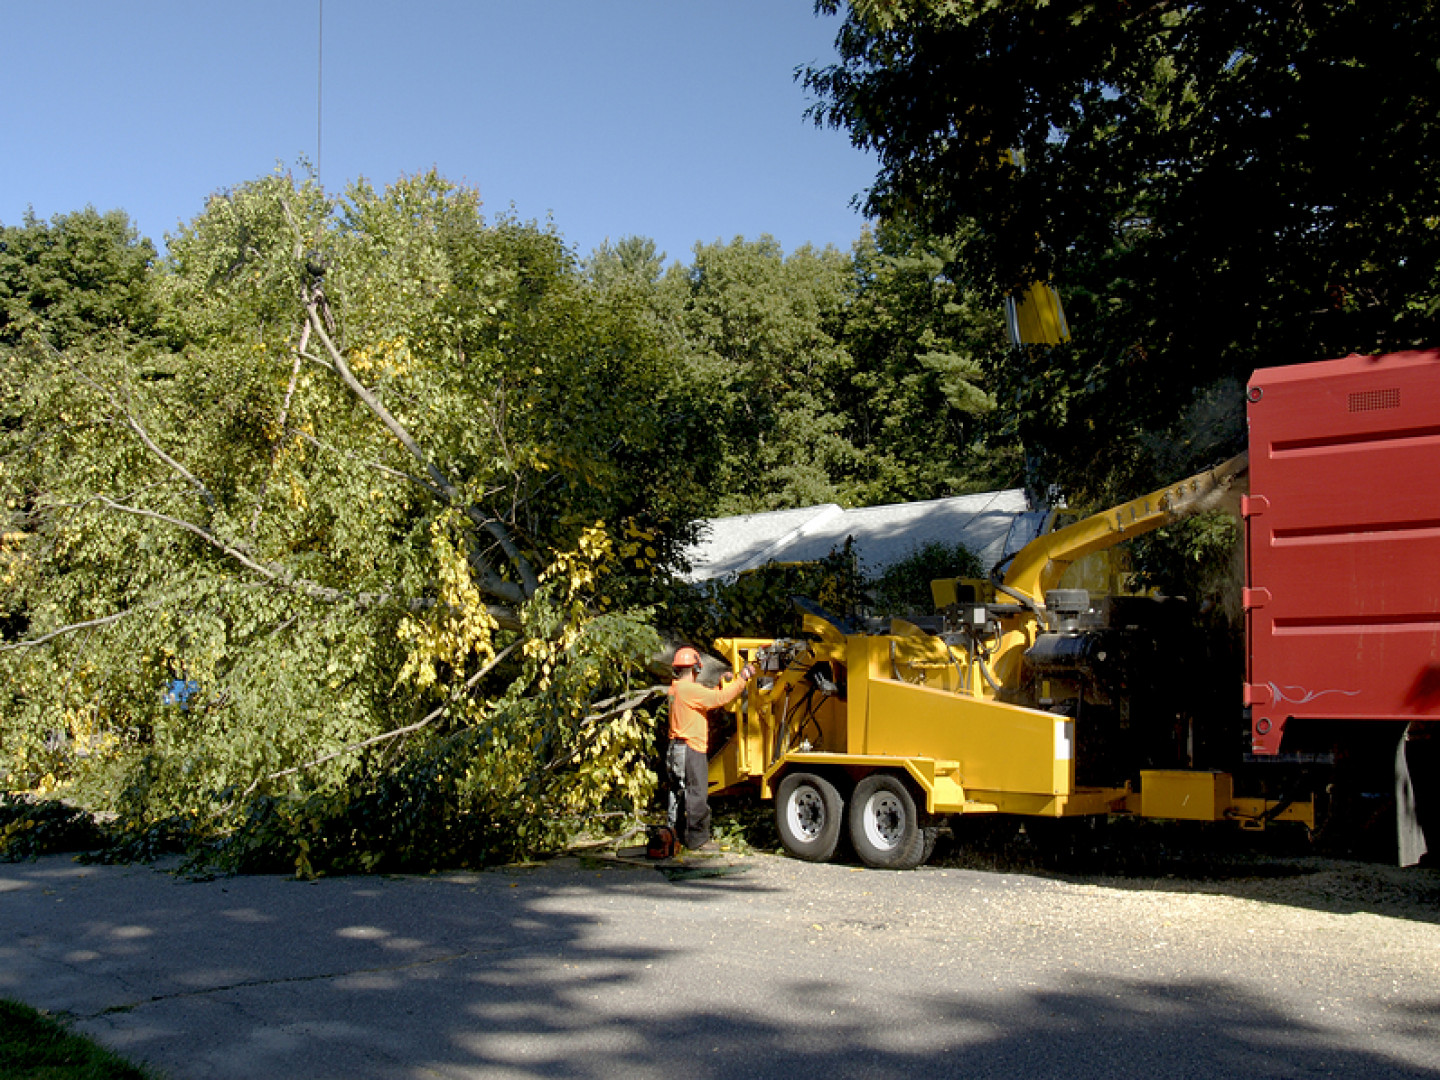 Why choose Darby's Tree Service?